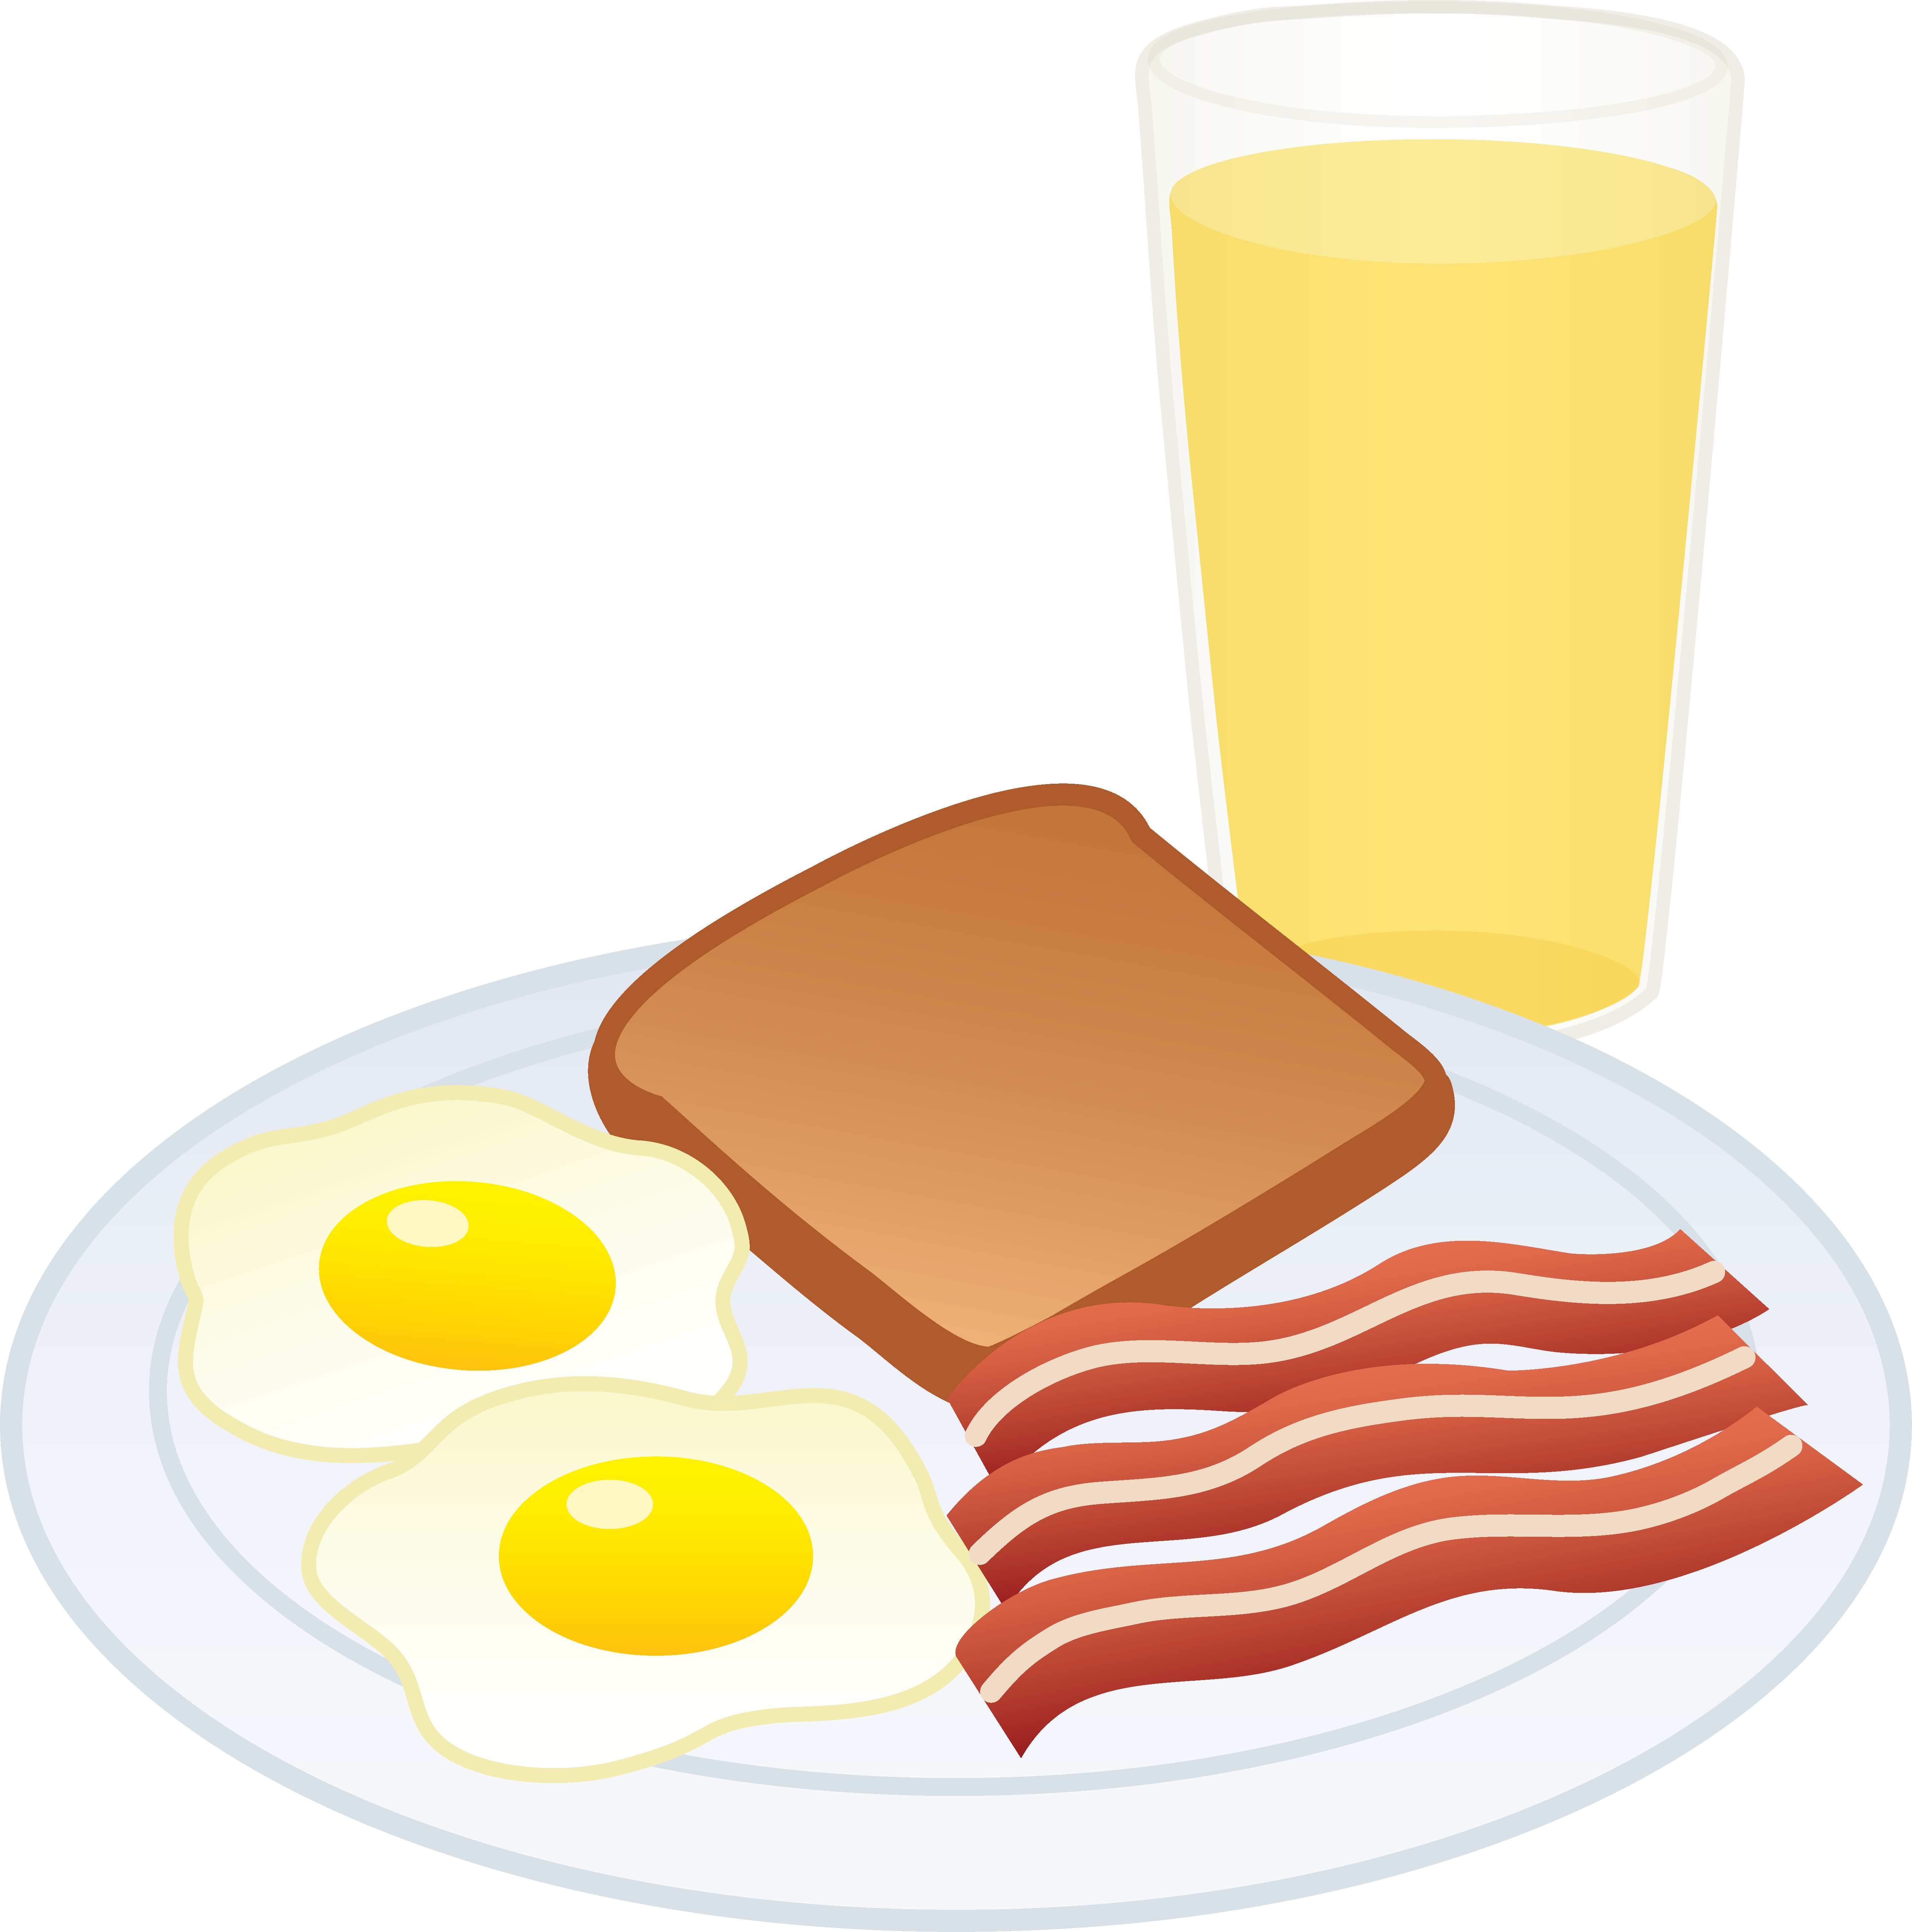 Breakfast clipart. Free fried egg download